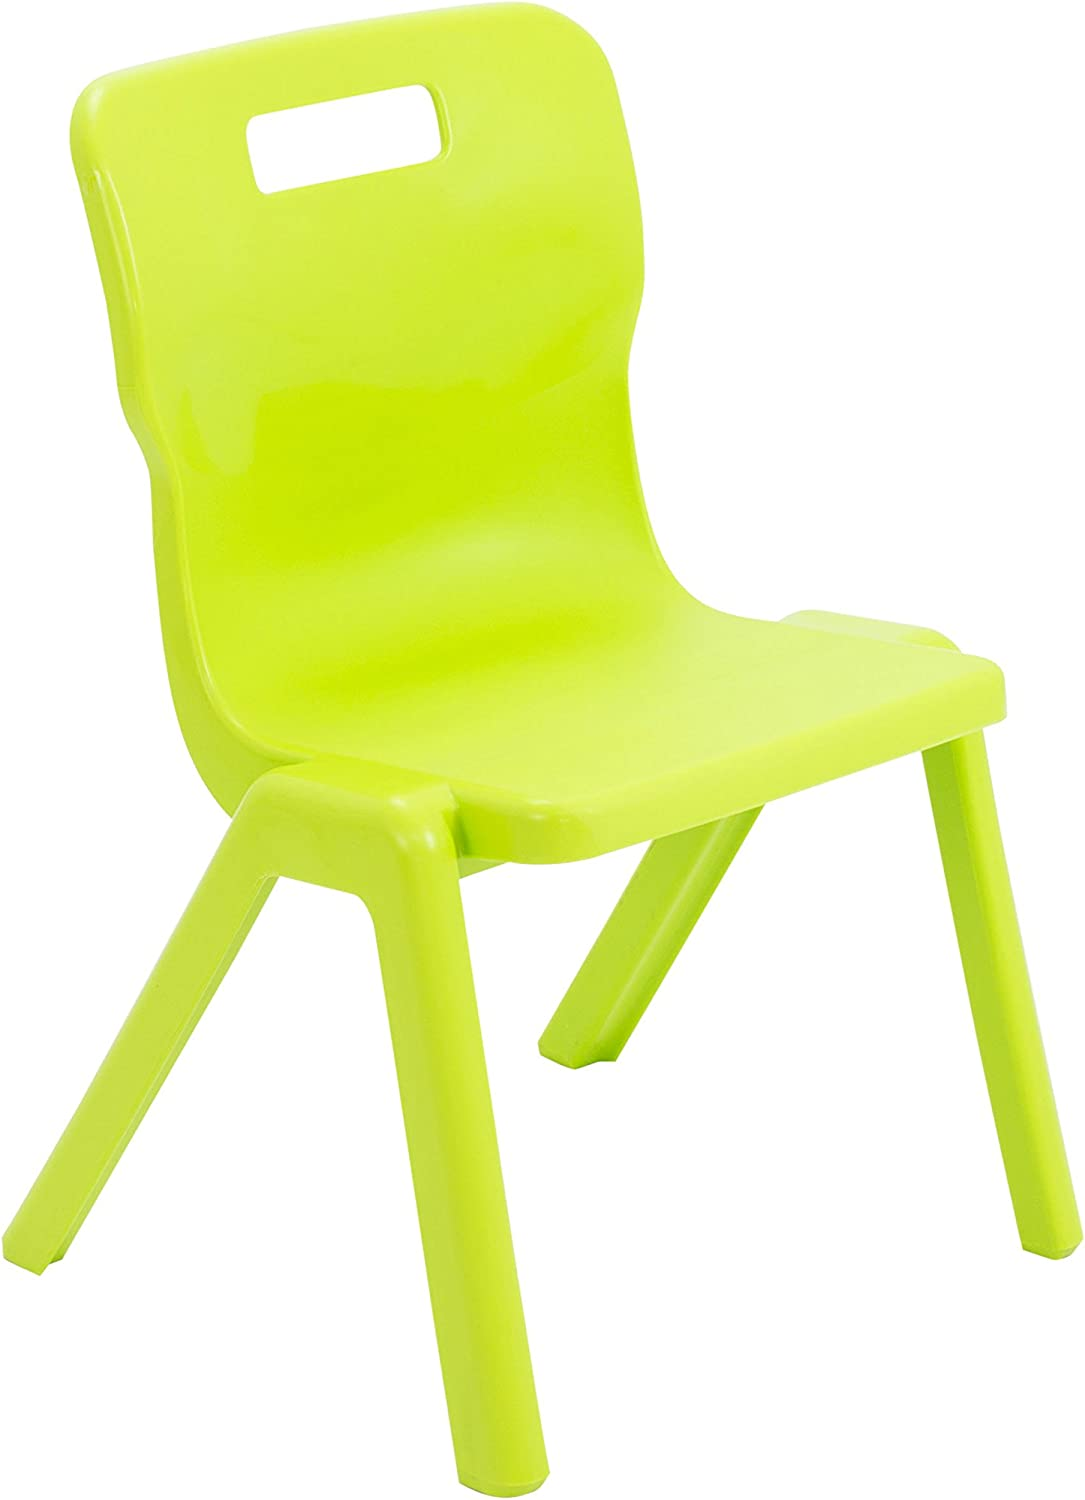 Size 3 for Ages 5-7 Years Lime Green Titan One Piece Classroom Chair Plastic Pack of 2